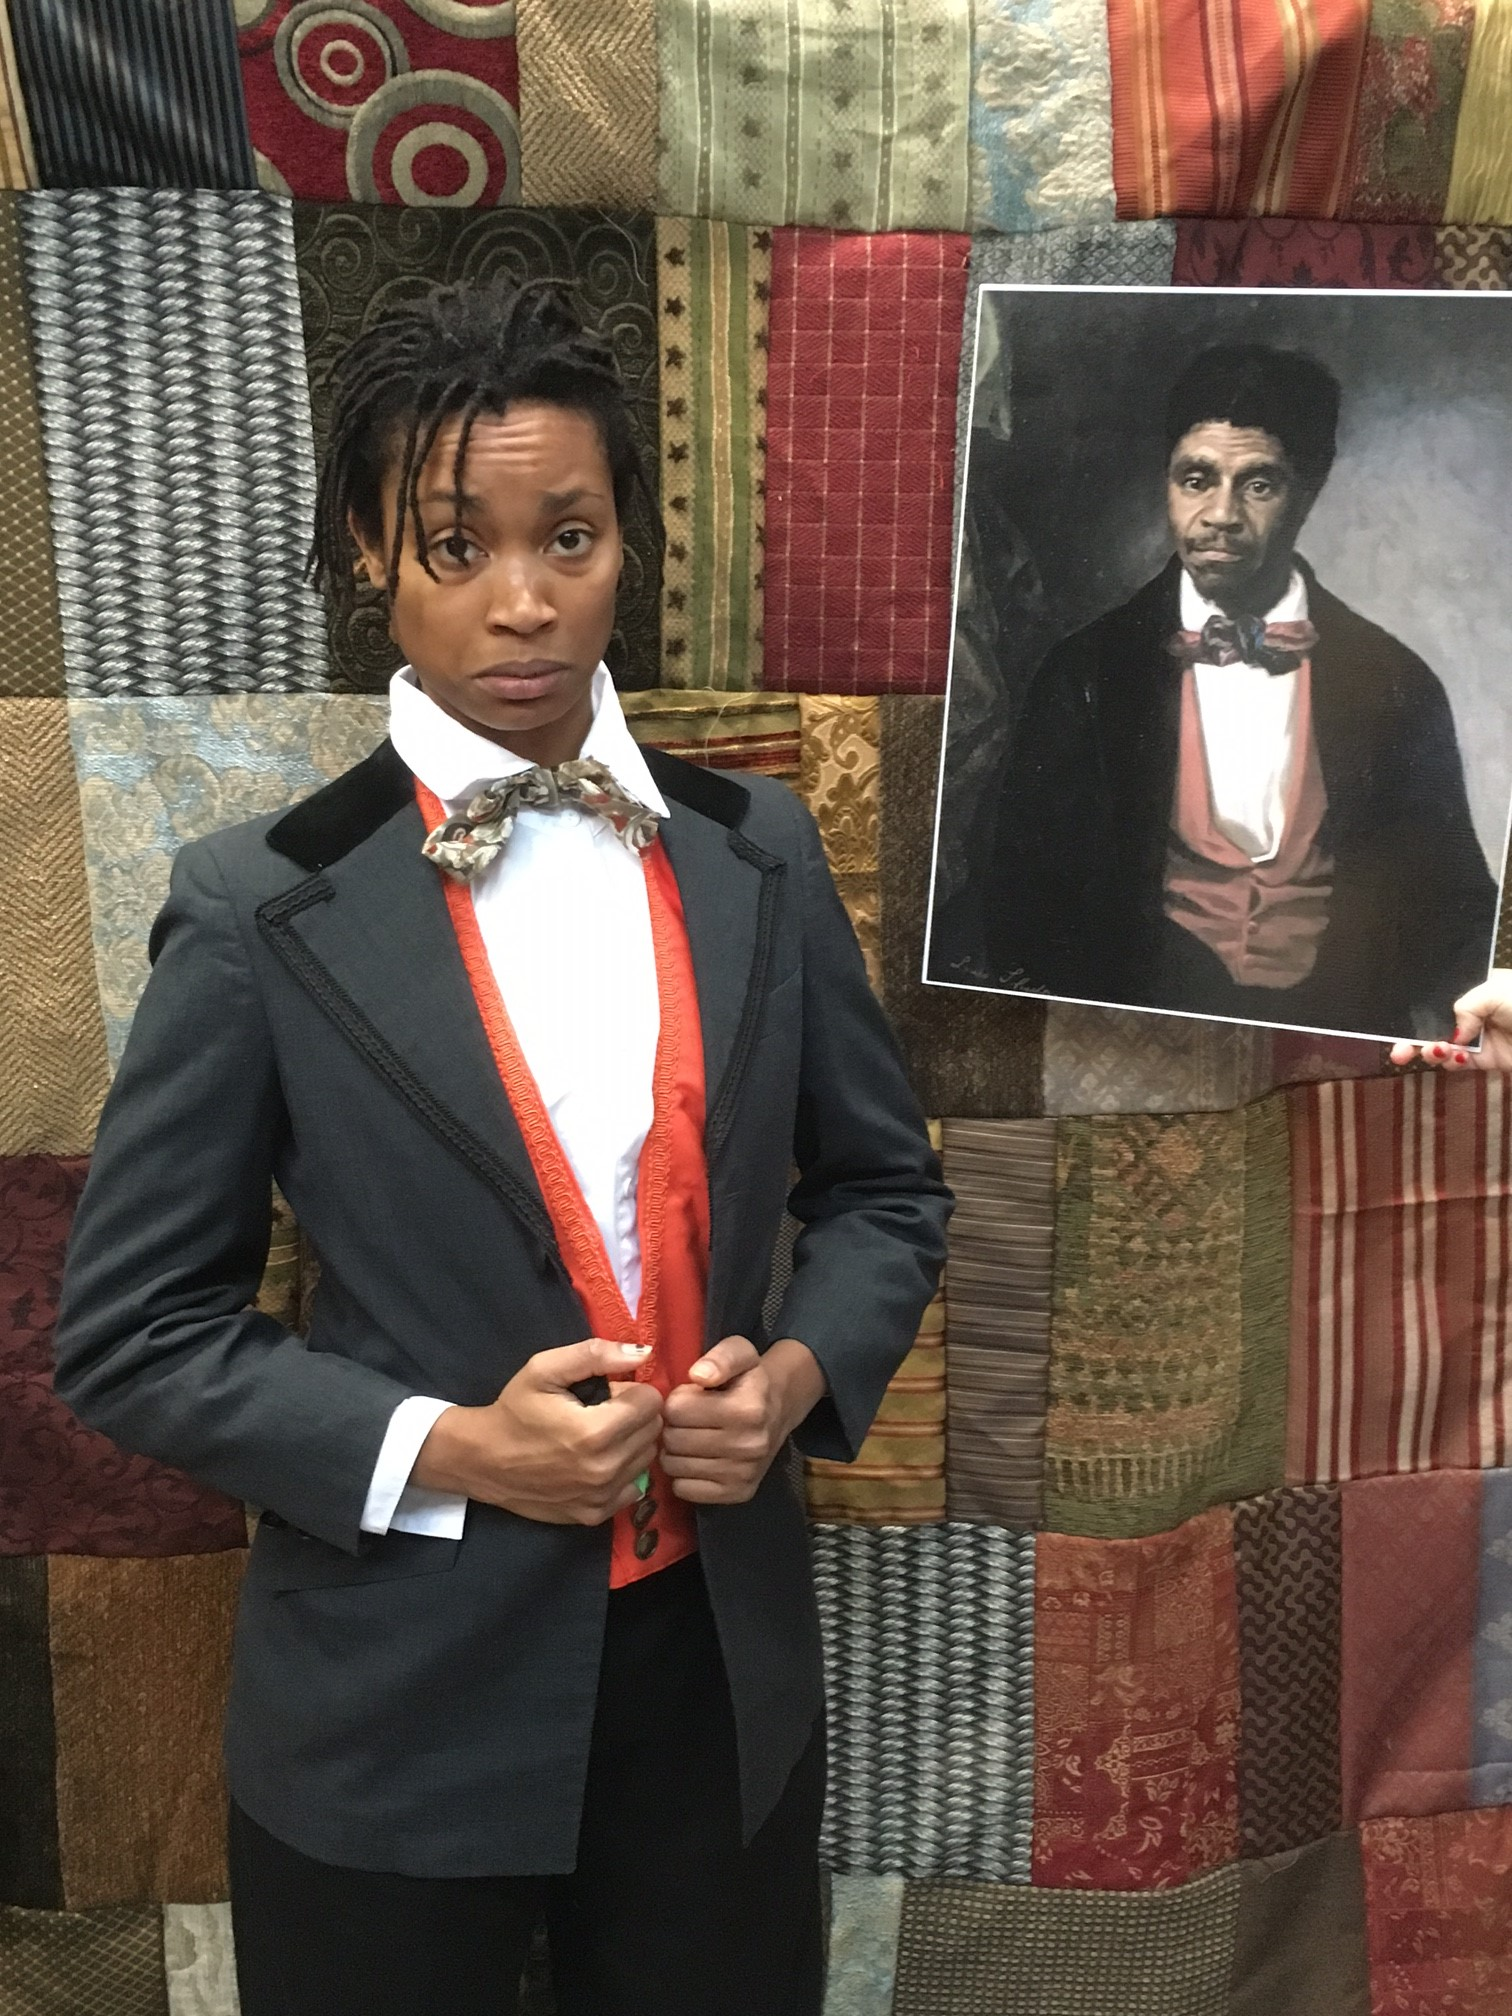 Actress wearing historic costume portrays Dred Scott